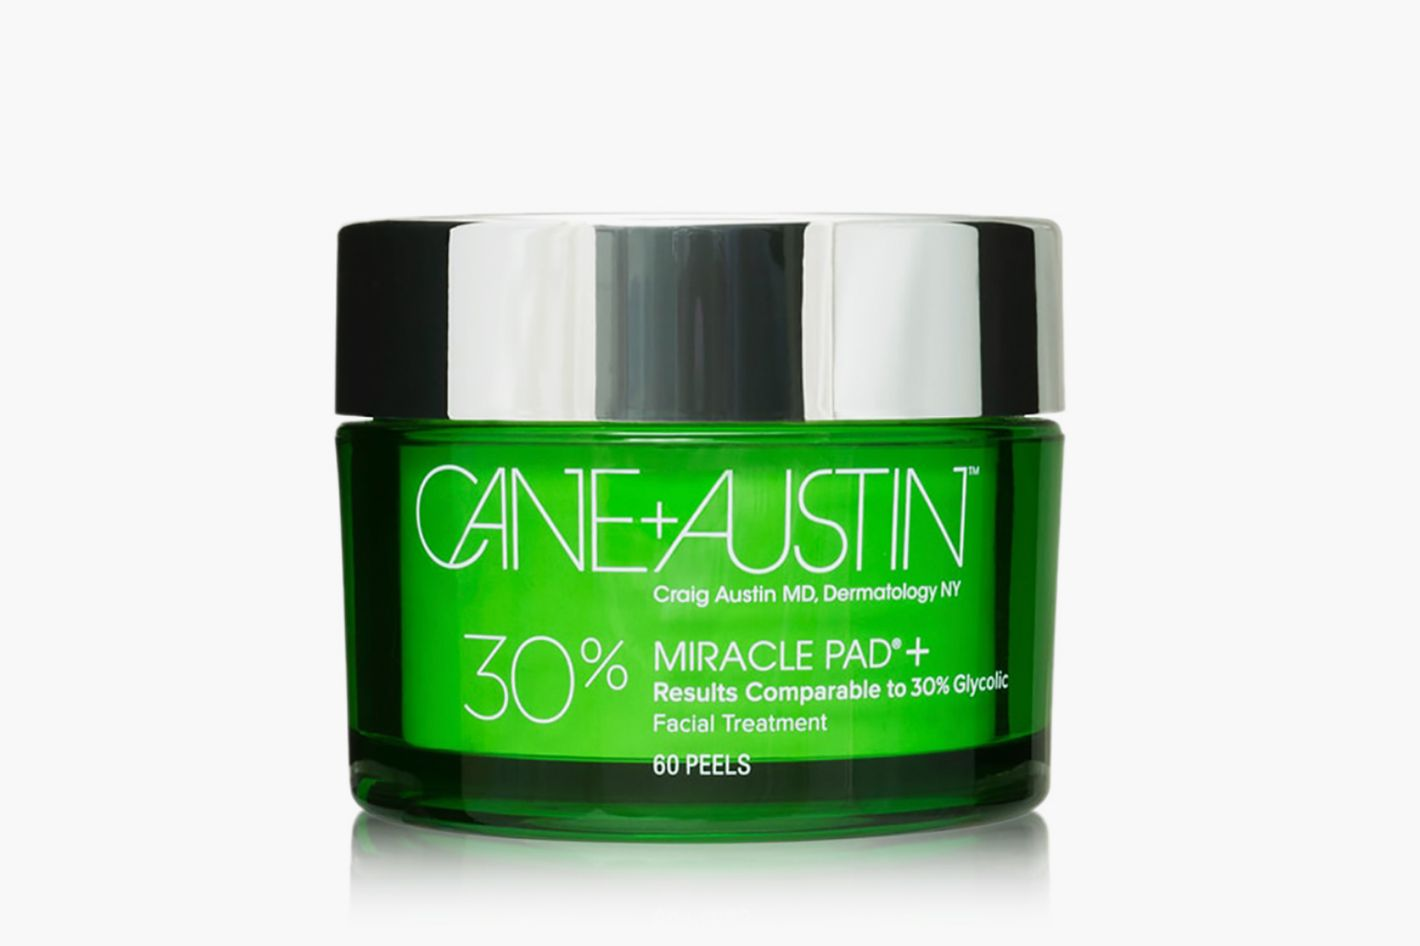 Cane and Austin Miracle Pad + 30%